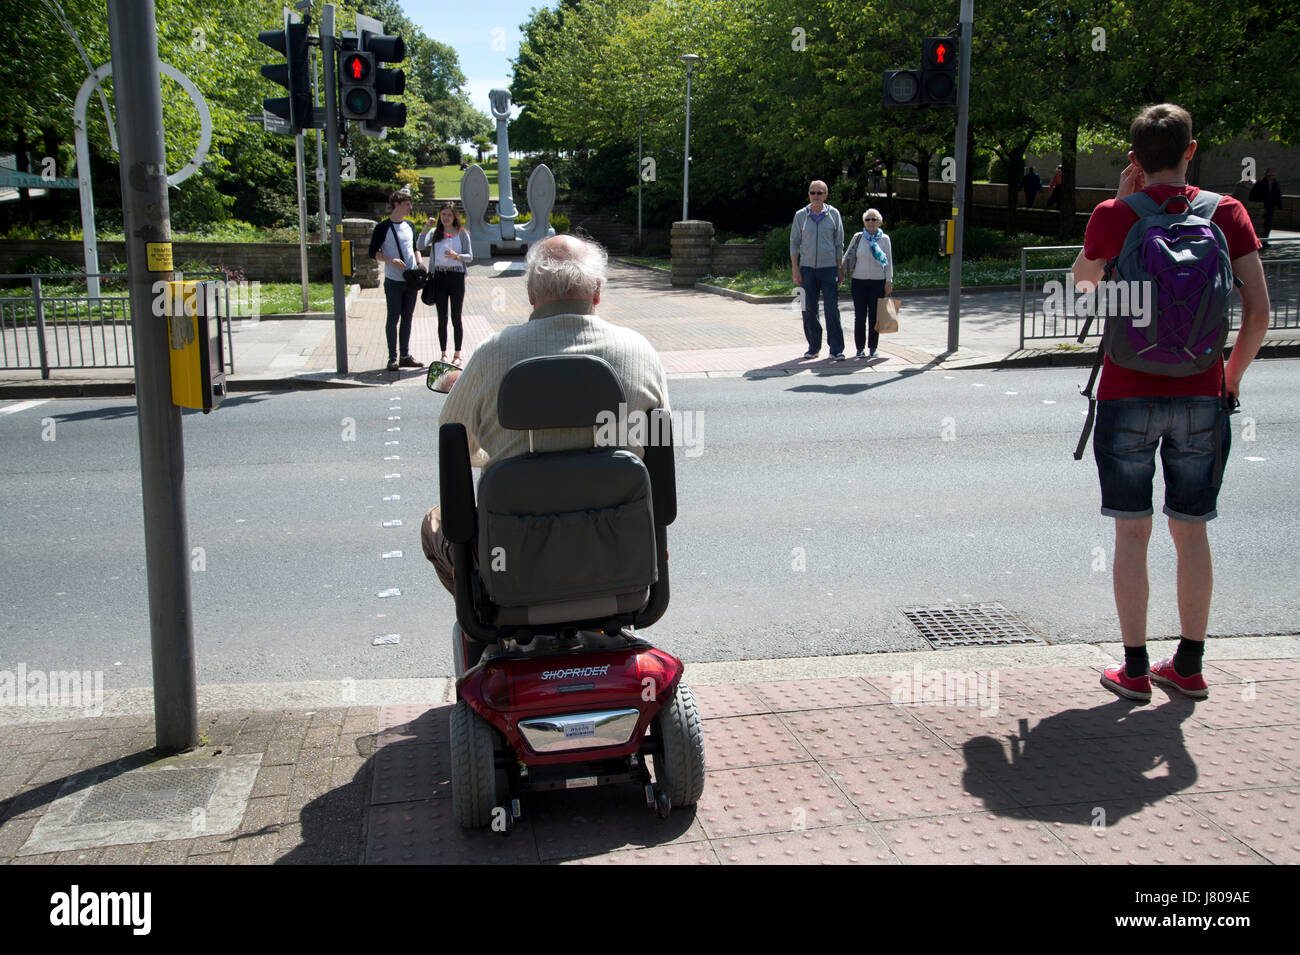 Plymouth, Devon. People including an elderly man on a disability scooter wait to cross a road - Stock Image